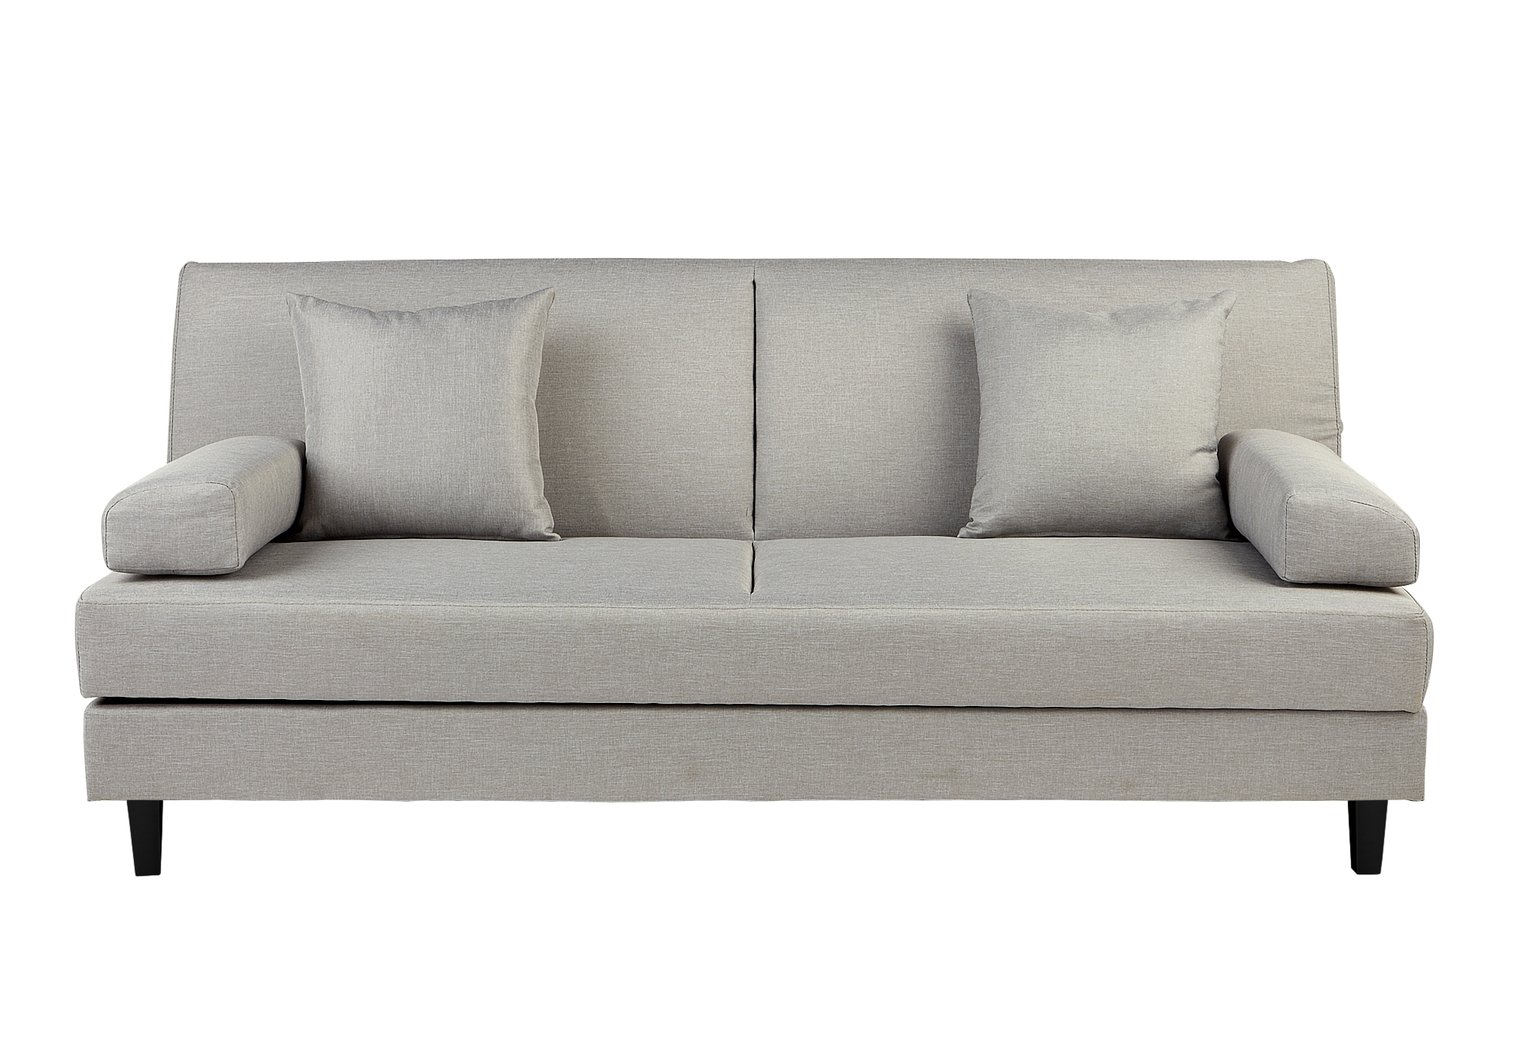 HOME Chase Clic Clac Fabric Storage Sofa Bed   Light Grey